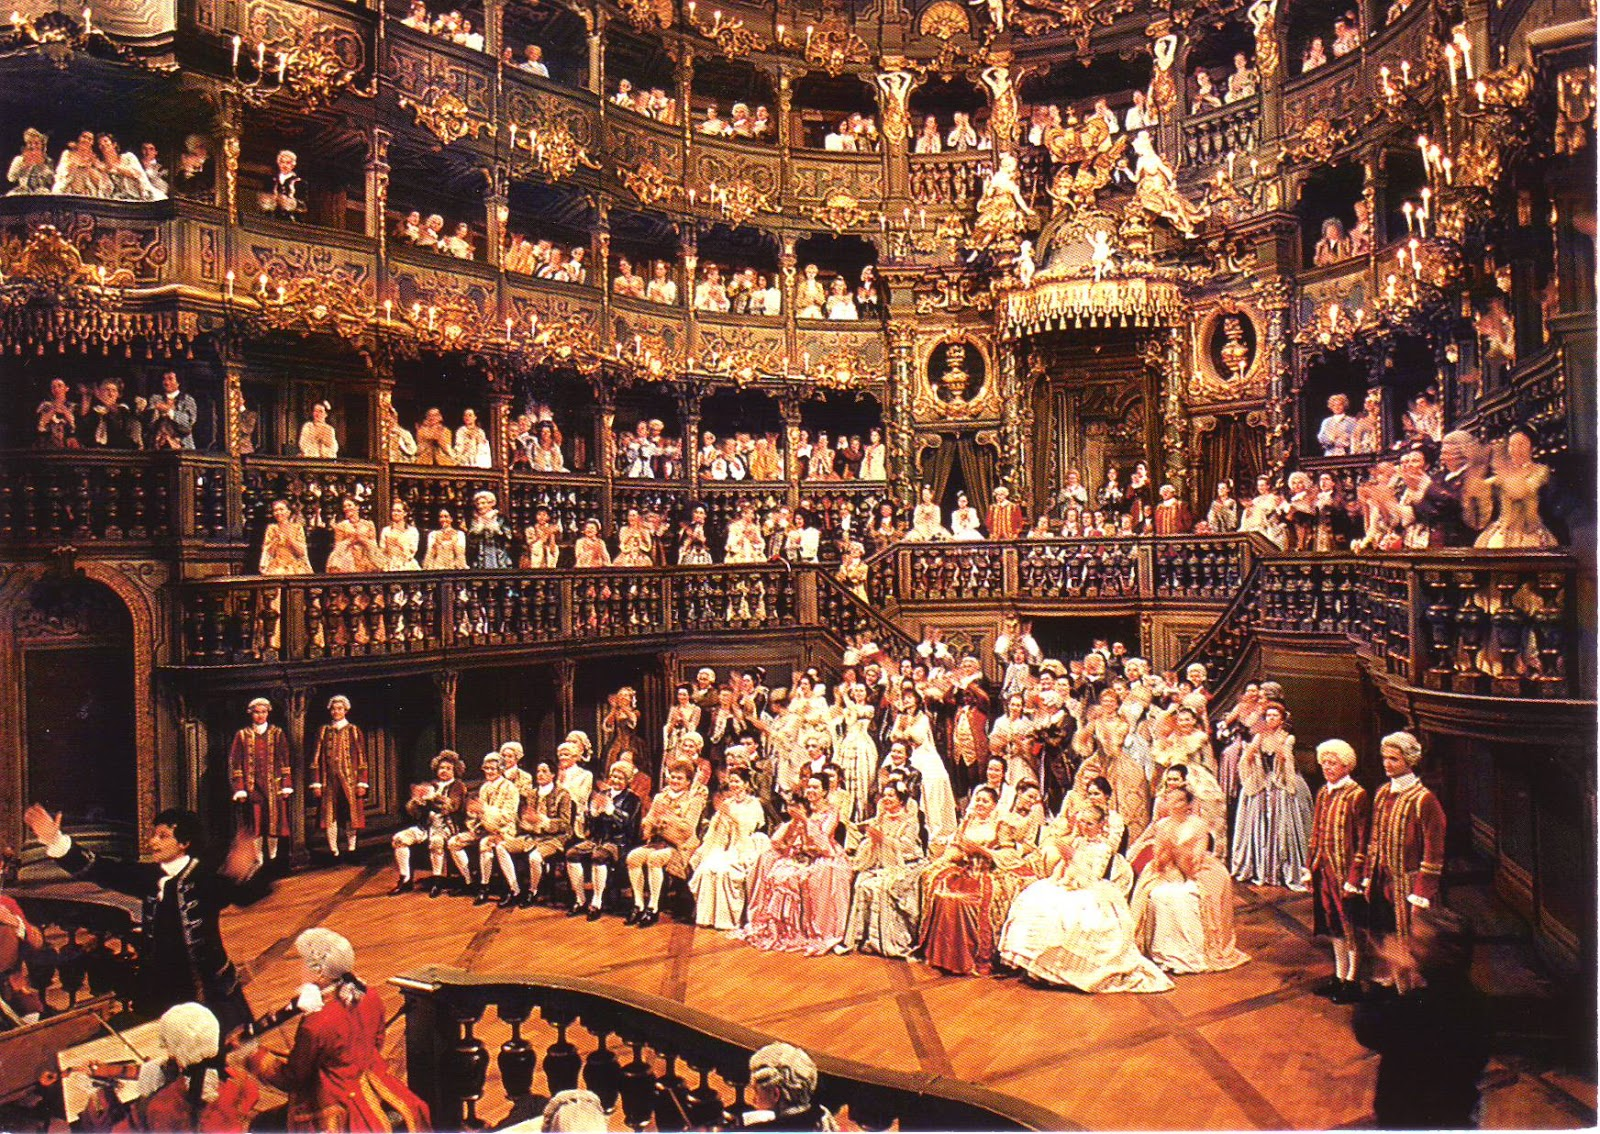 theater from restoration through romanticism The modern theatre: realism romanticism is known for exotic locales and swashbuckling heroes compare and contrast restoration and realist theatres in terms of their treatment of acting conventions, stage design, and subject matter.